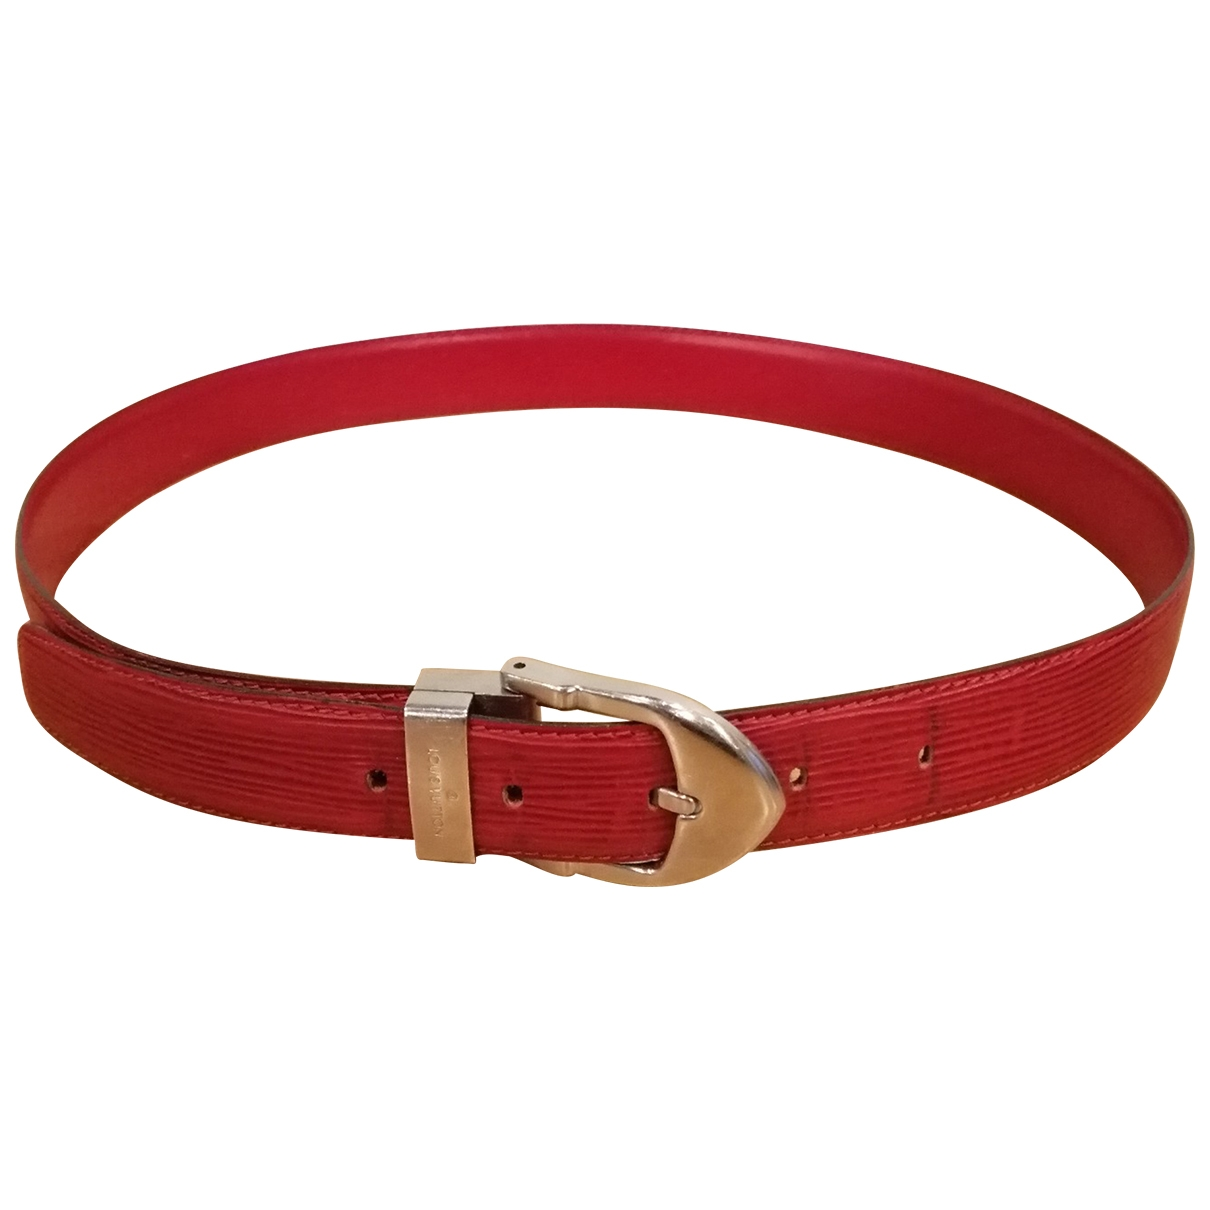 Louis Vuitton \N Red Leather belt for Women 85 cm